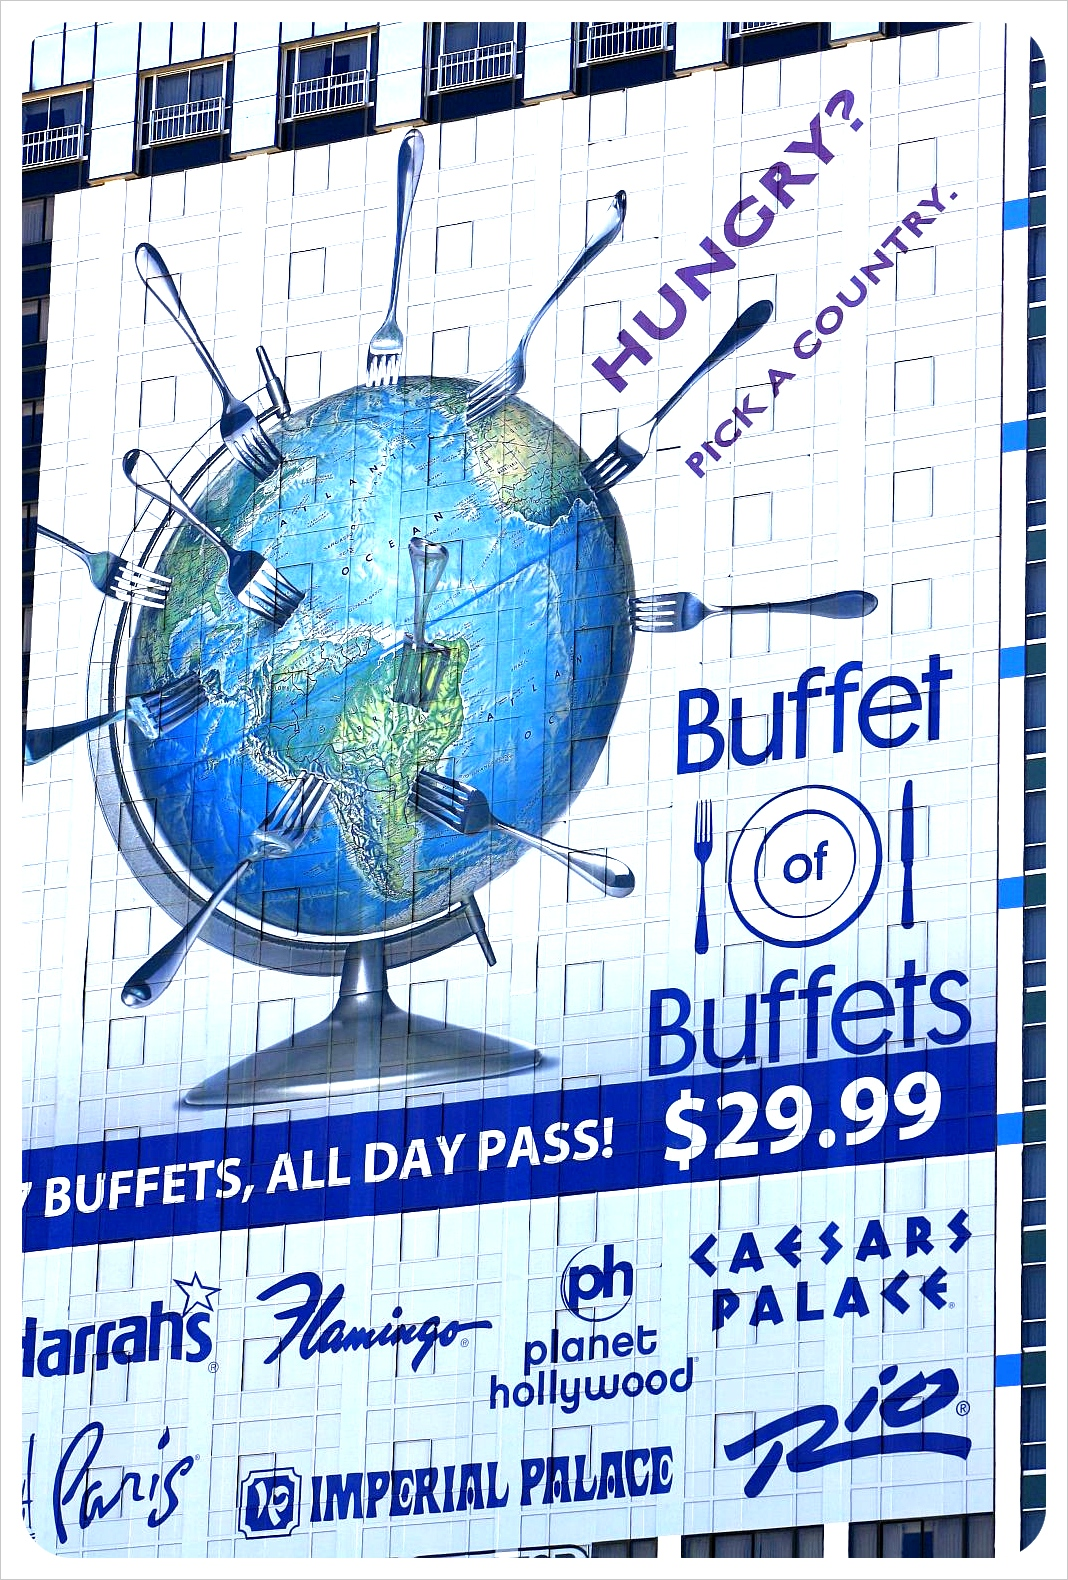 Fullsize Of Buffet Of Buffets